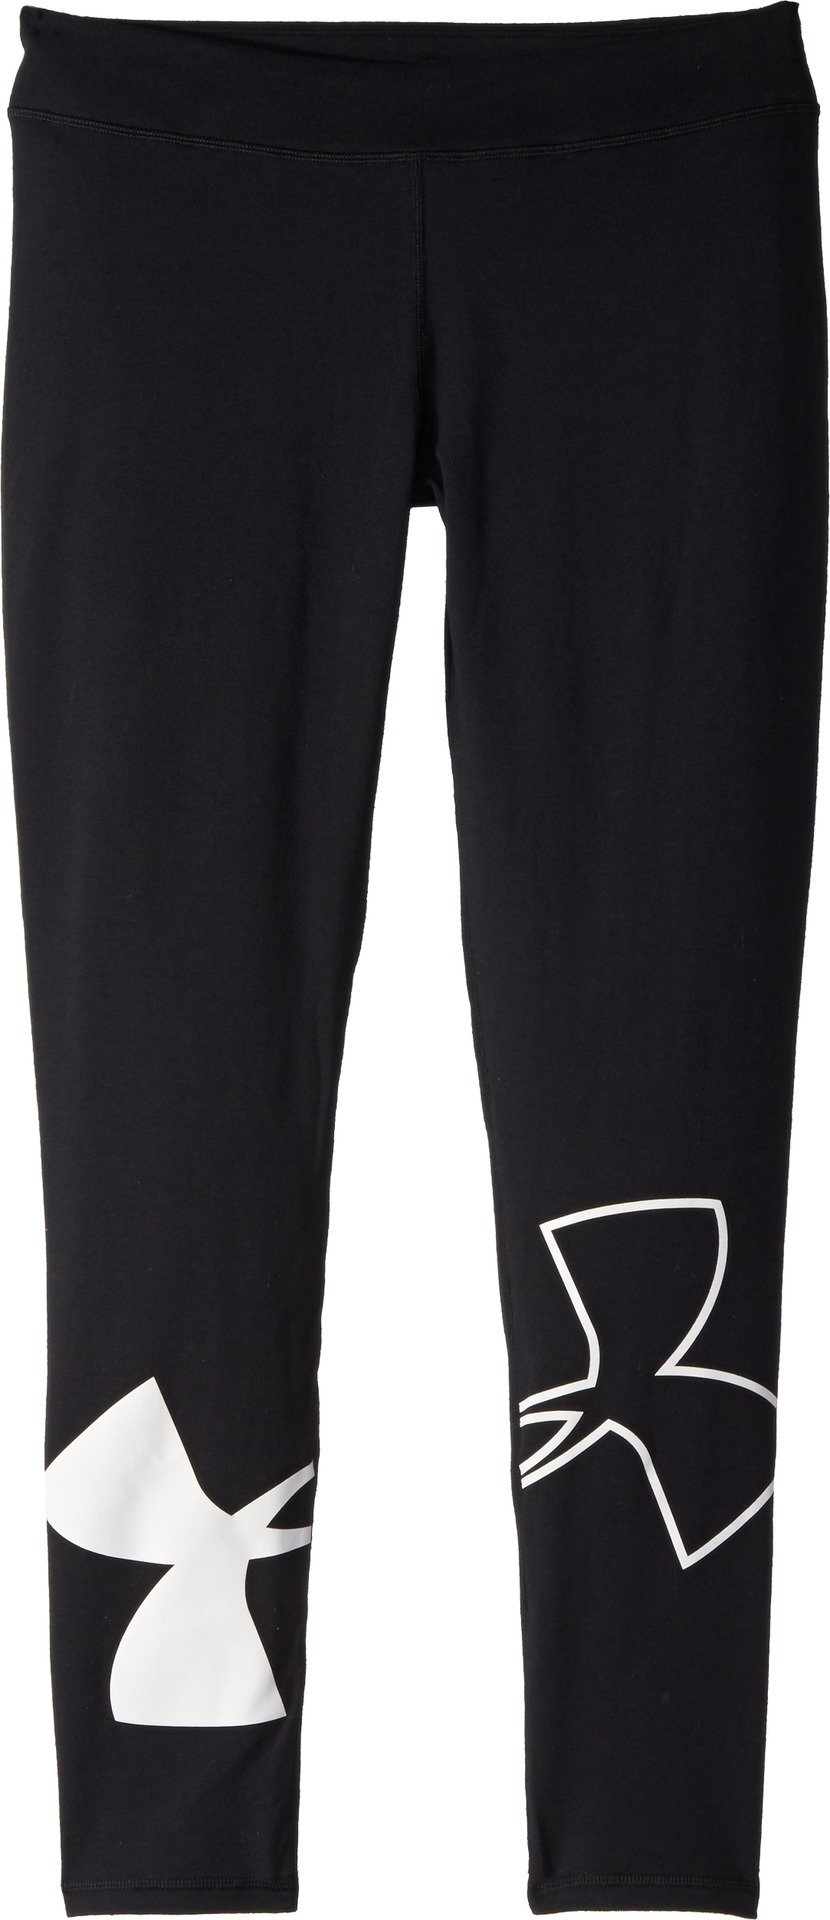 Under Armour Kids Girl's Favorite Knit Leggings (Big Kids) Black/White X-Large